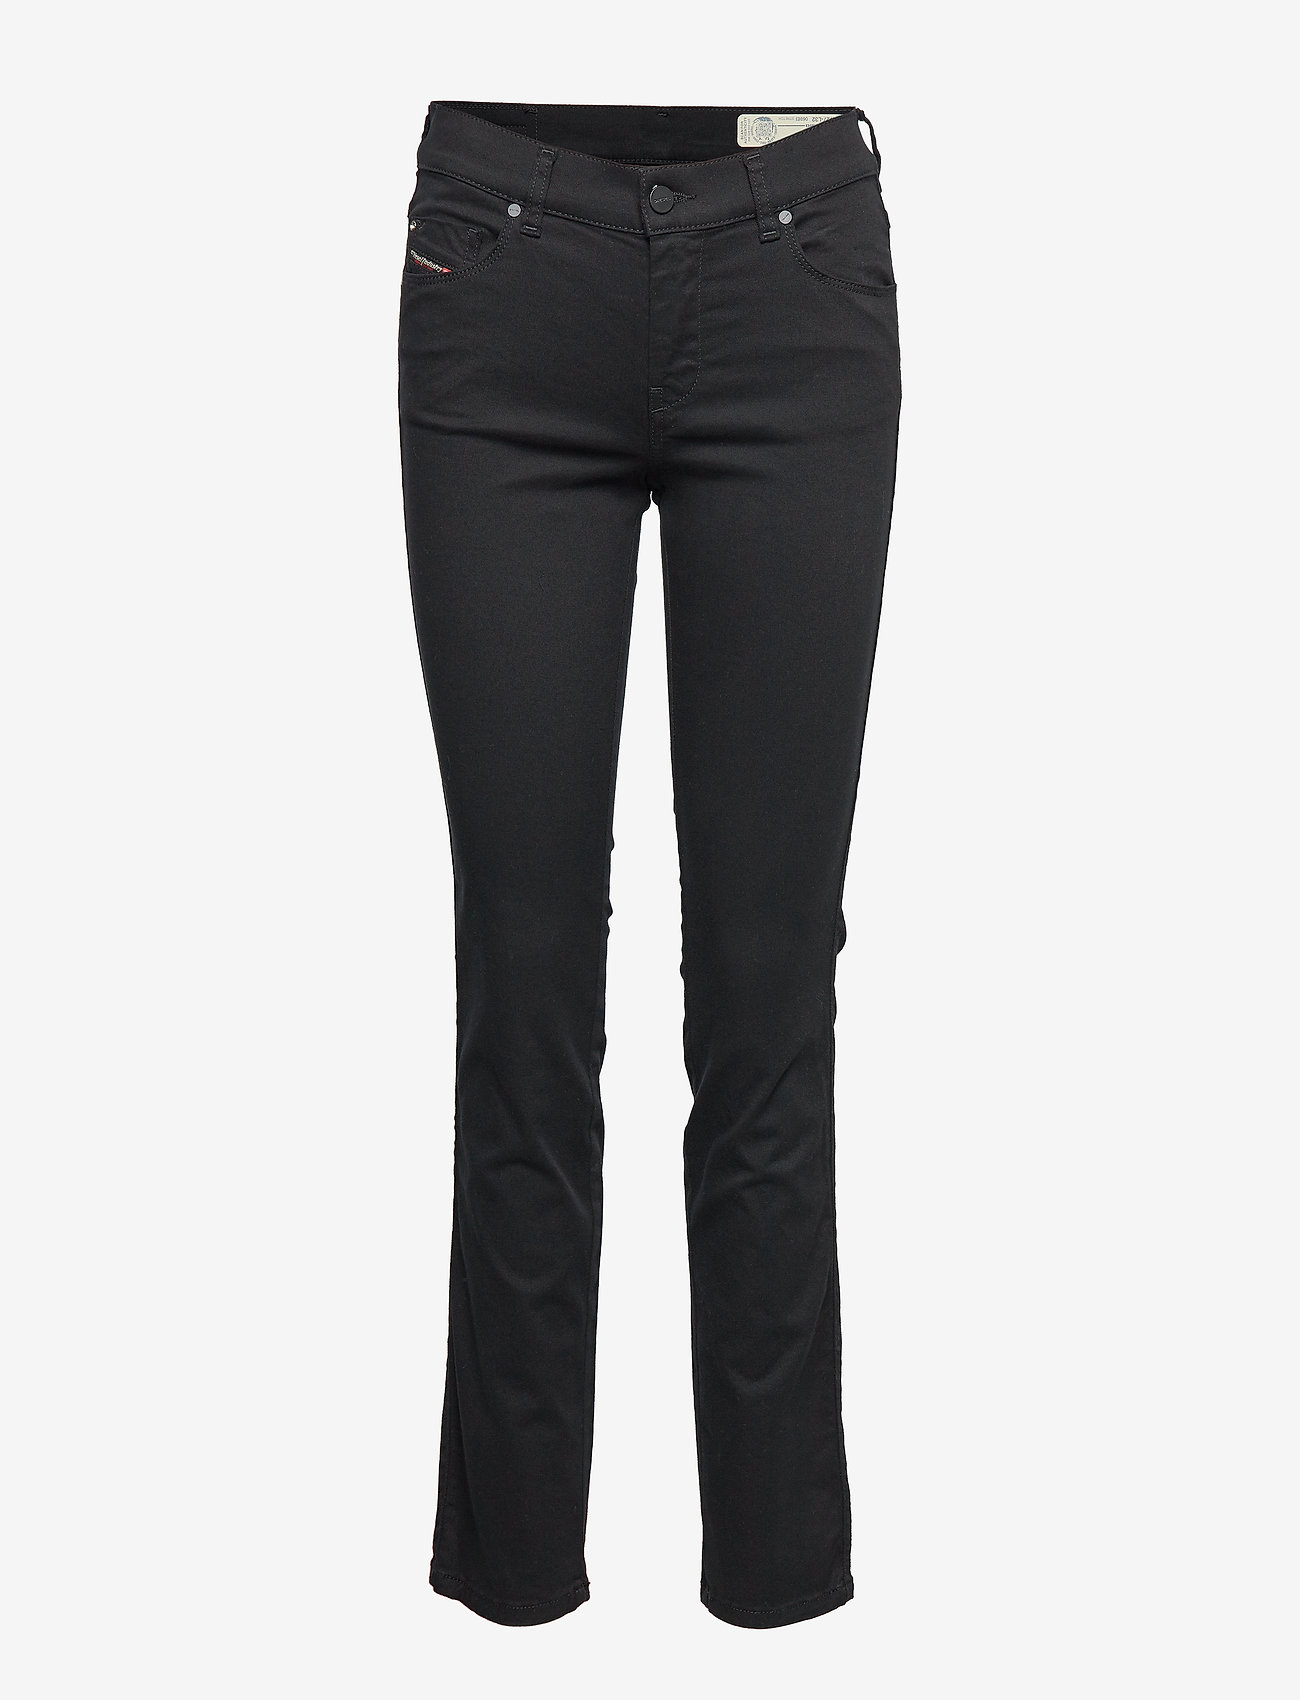 Diesel Women - SANDY 0665W - boot cut jeans - black/denim - 0